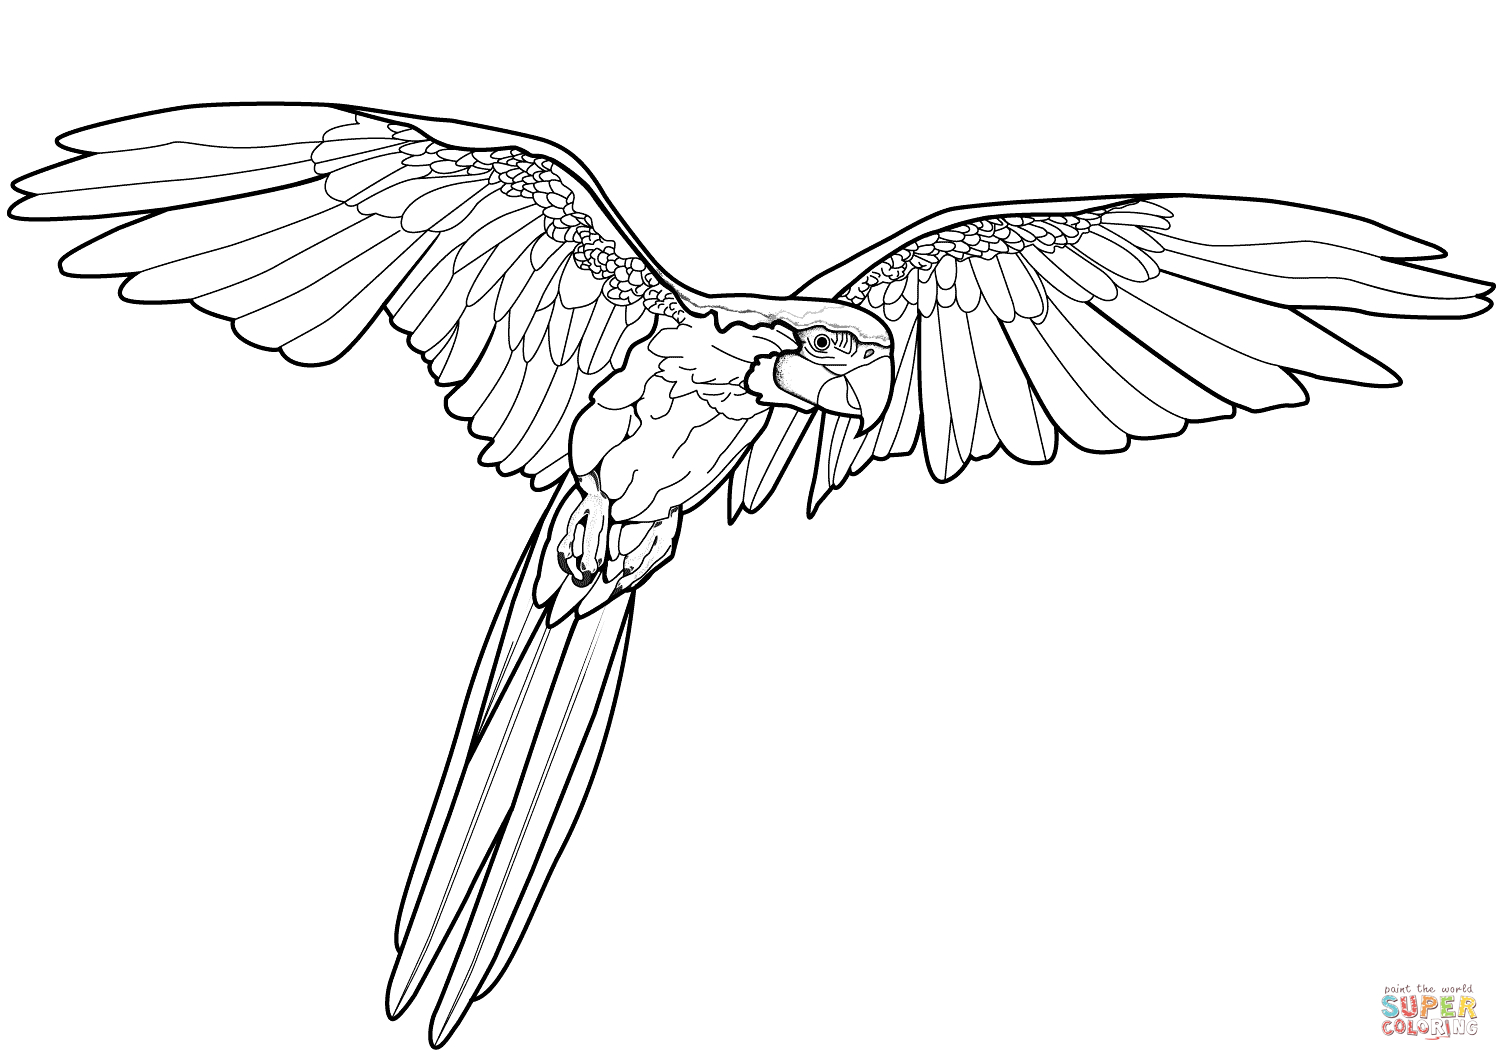 Flying Parrot Coloring Page | Free Printable Coloring Pages - Free Printable Parrot Coloring Pages